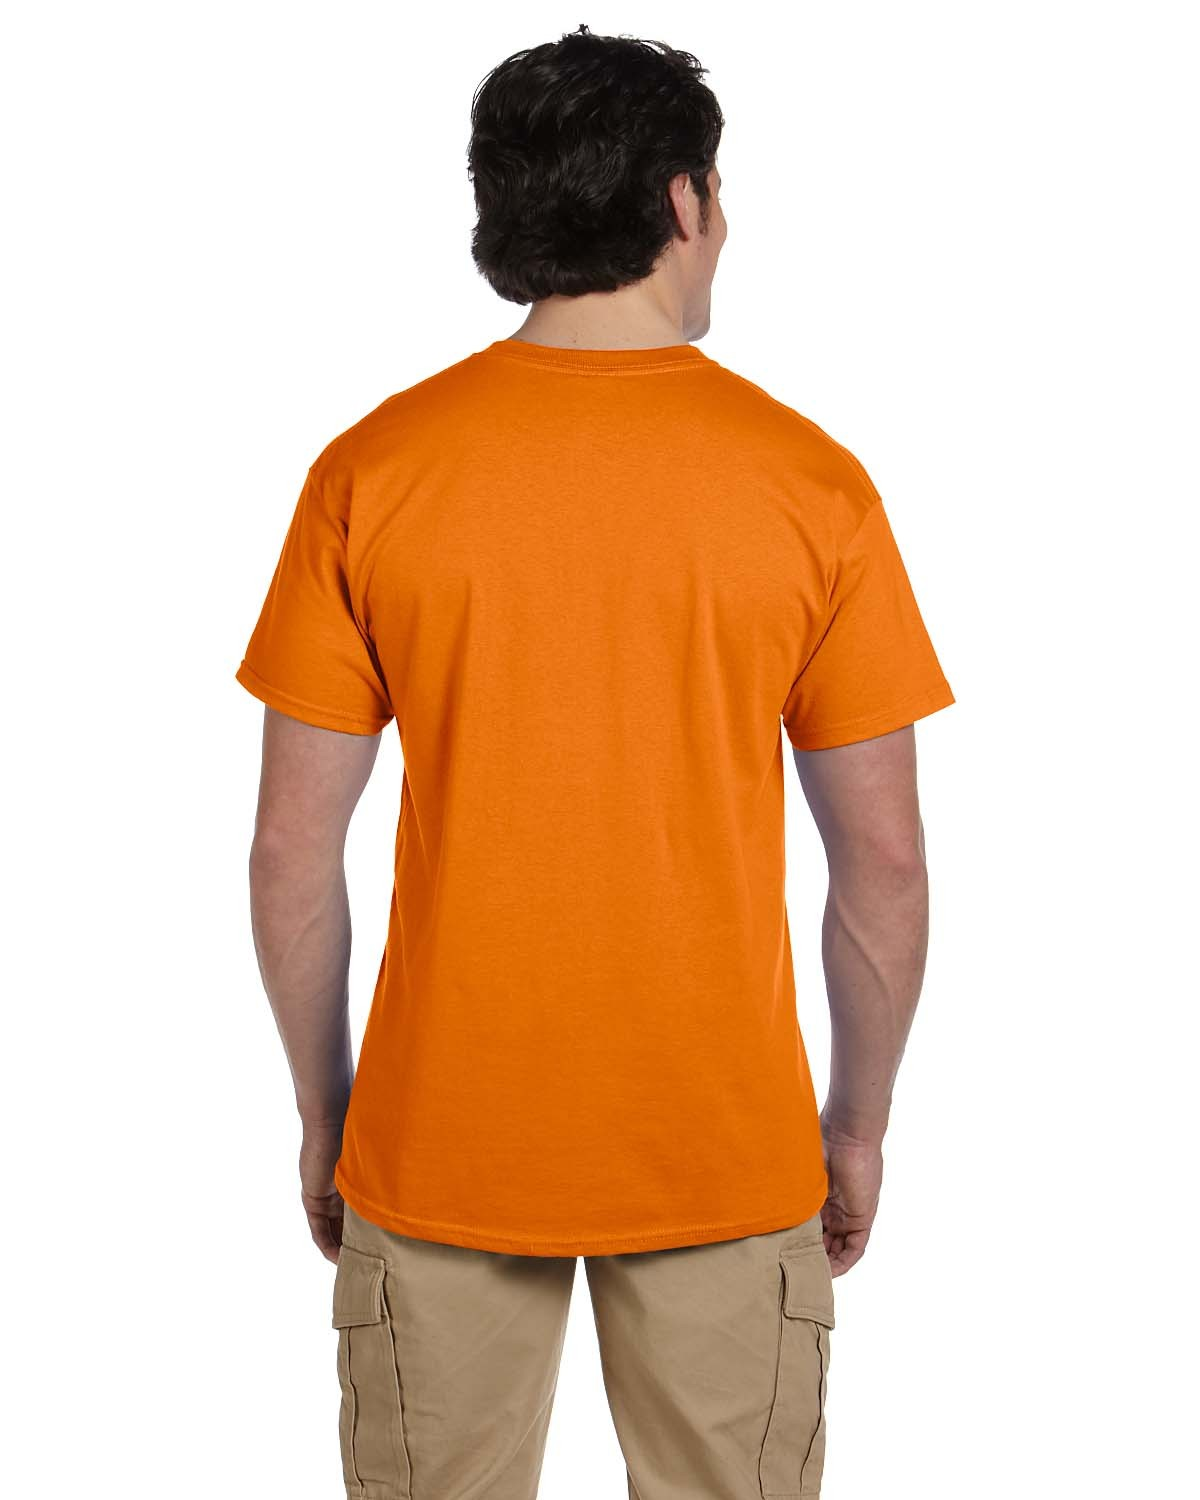 3931 Fruit of the Loom TENNESSEE ORANGE